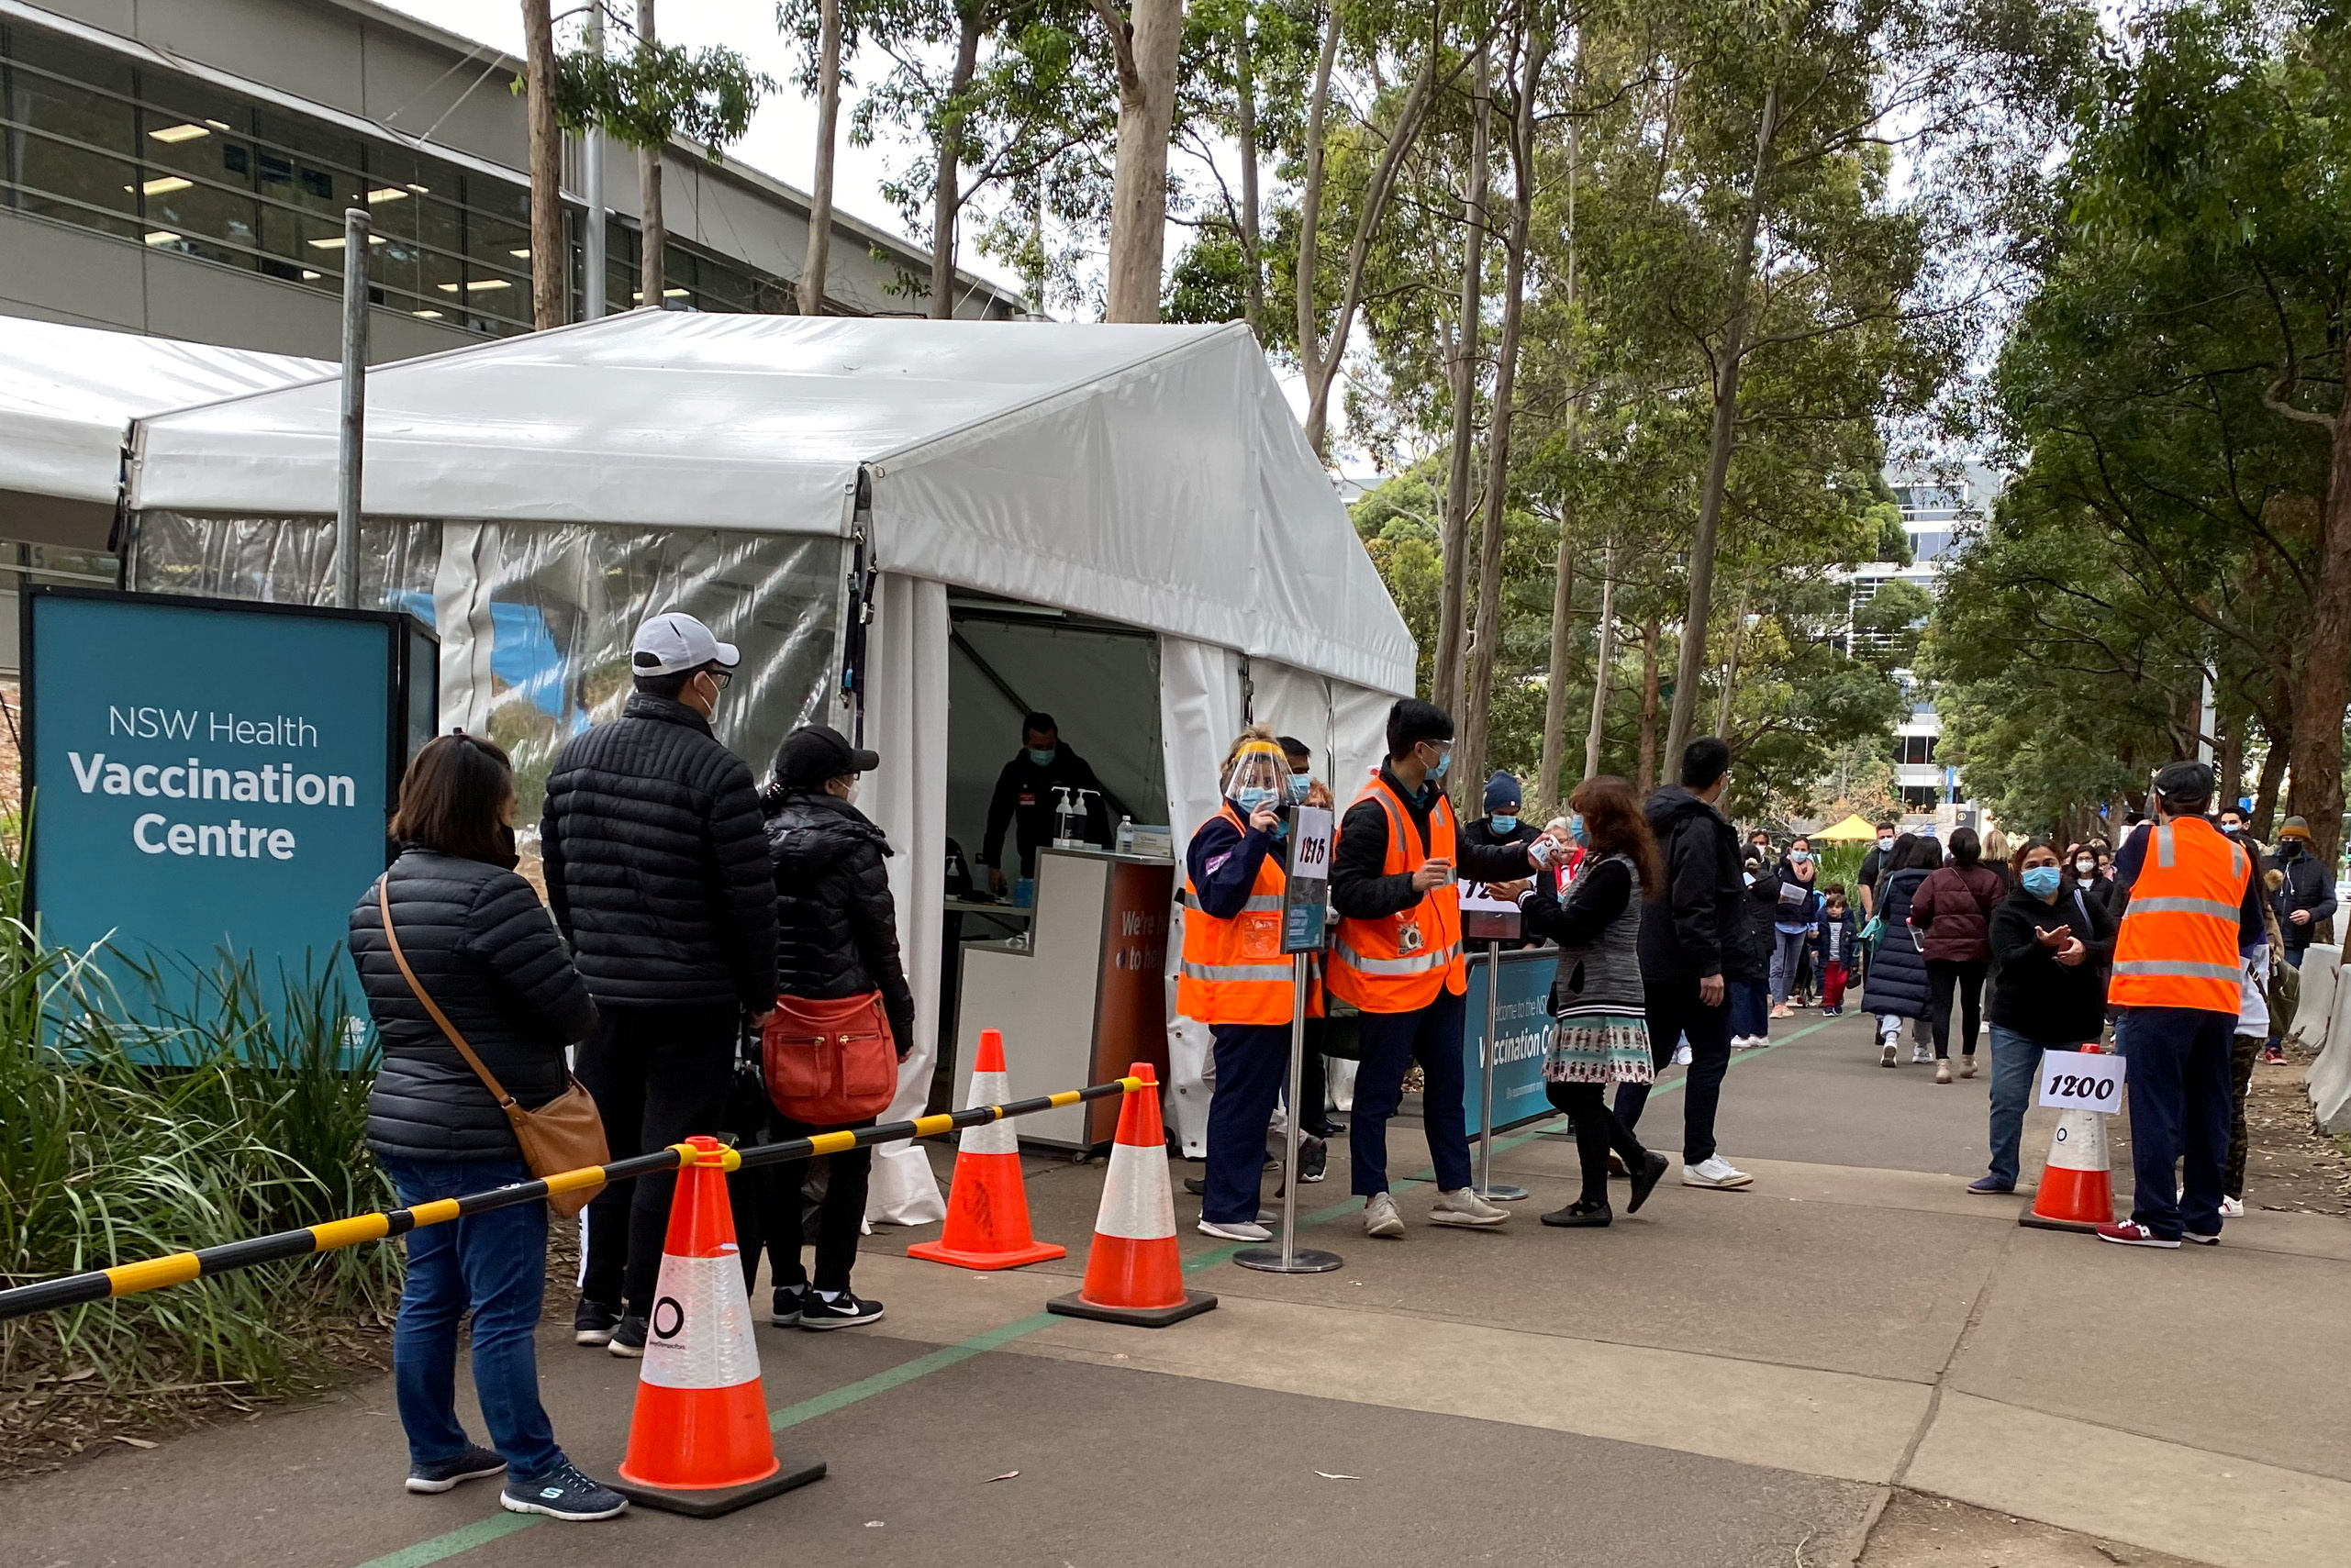 People wait in line outside a coronavirus disease (COVID-19) vaccination centre at Sydney Olympic Park in Sydney, Australia, July 14, 2021. REUTERS/Jane Wardell